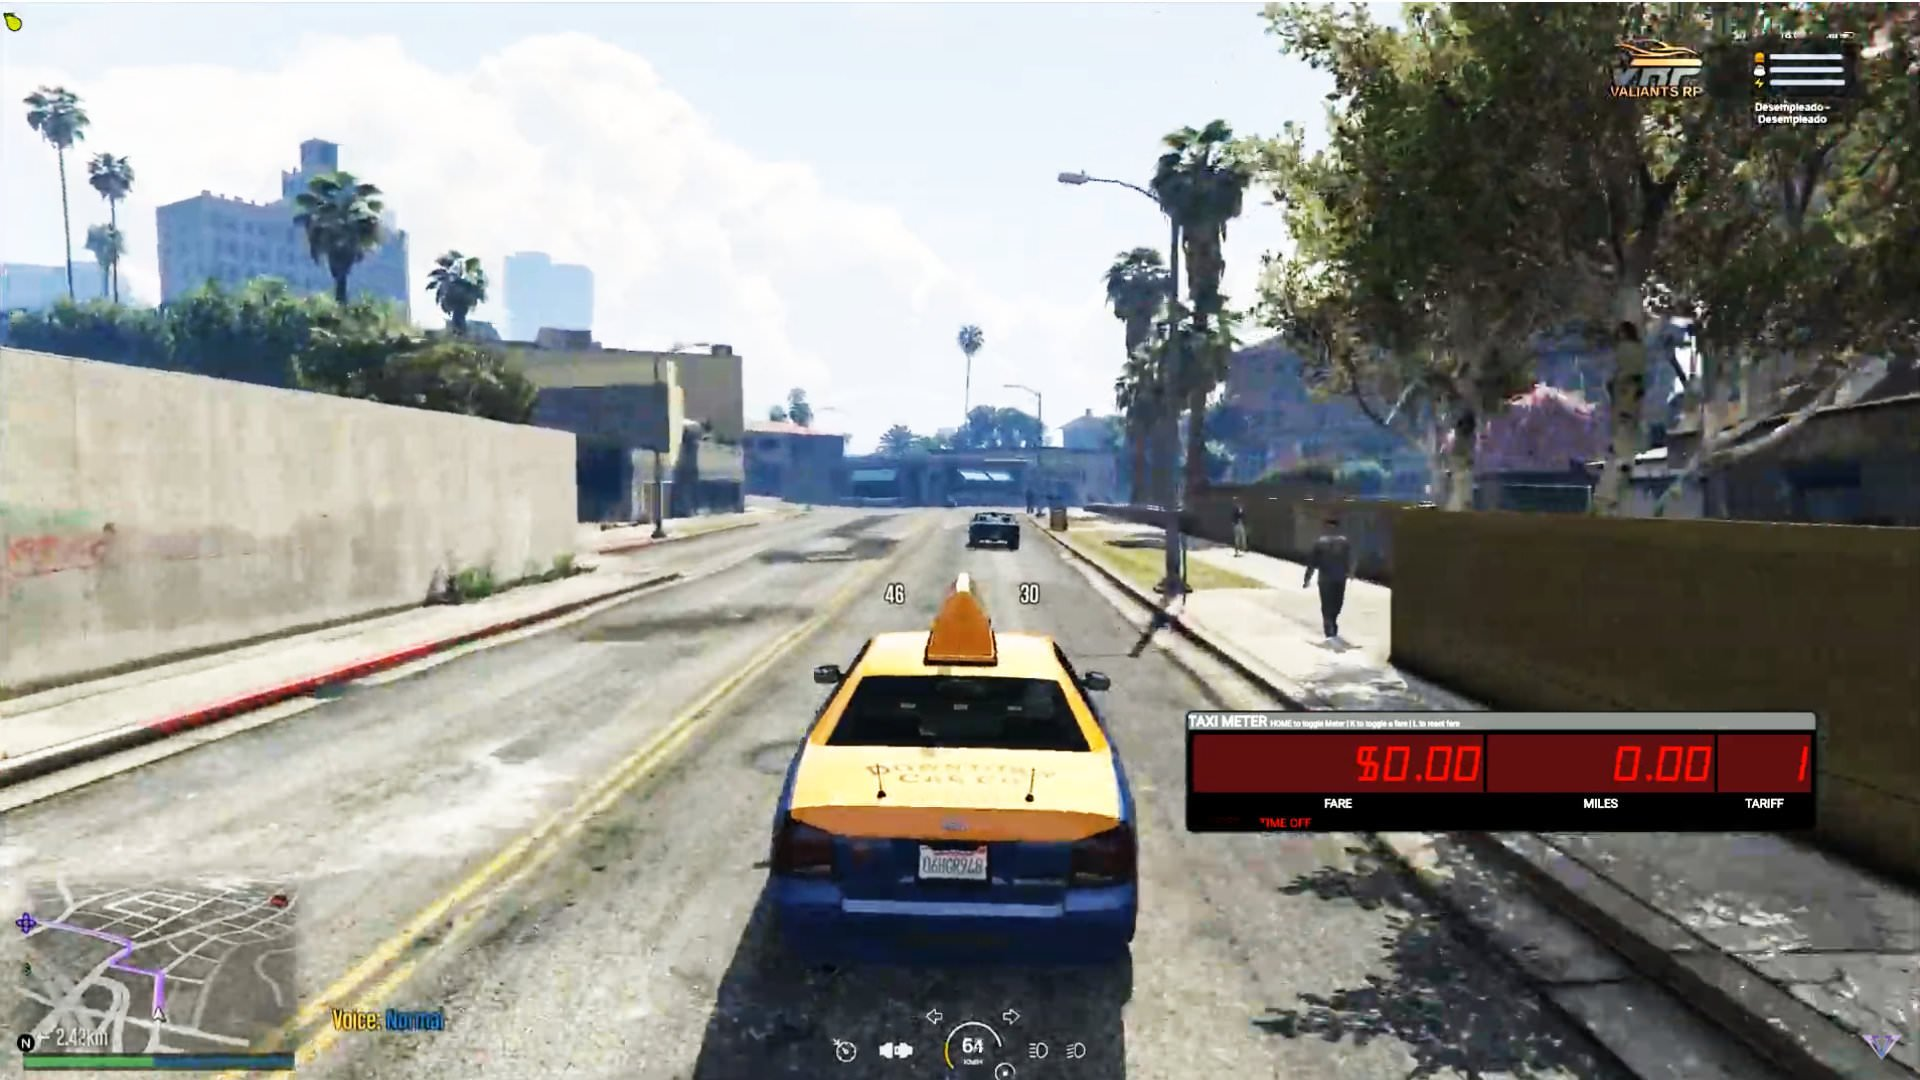 El Taxi - Vegetta777 y Willyrex en roleplay de GTA 5